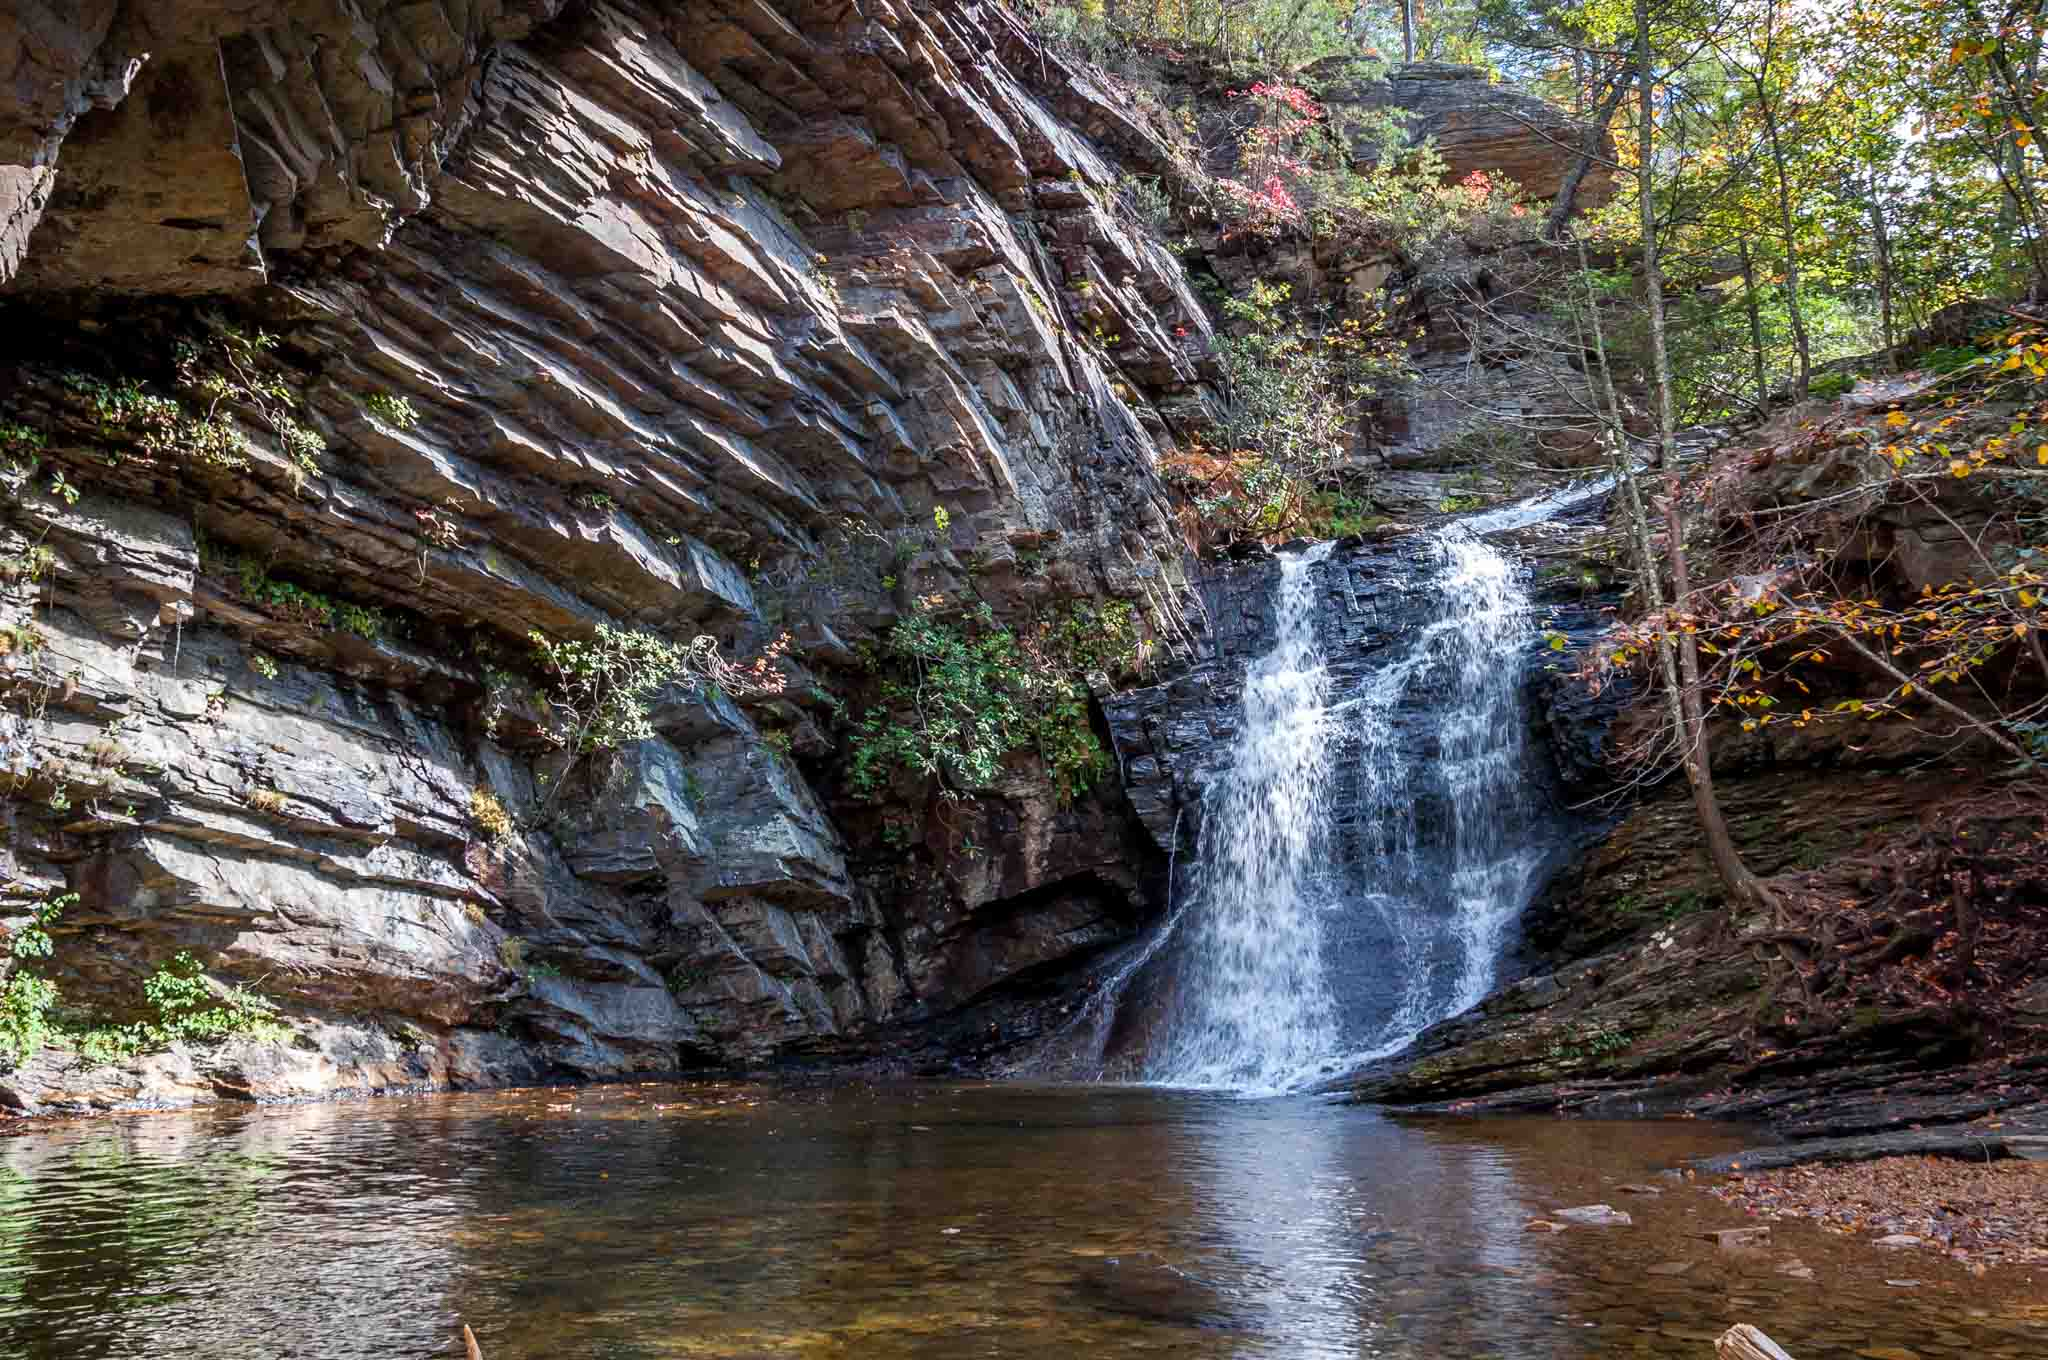 The beautiful Lower Cascades Falls in North Carolina's Hanging Rock State Park is an easy hike